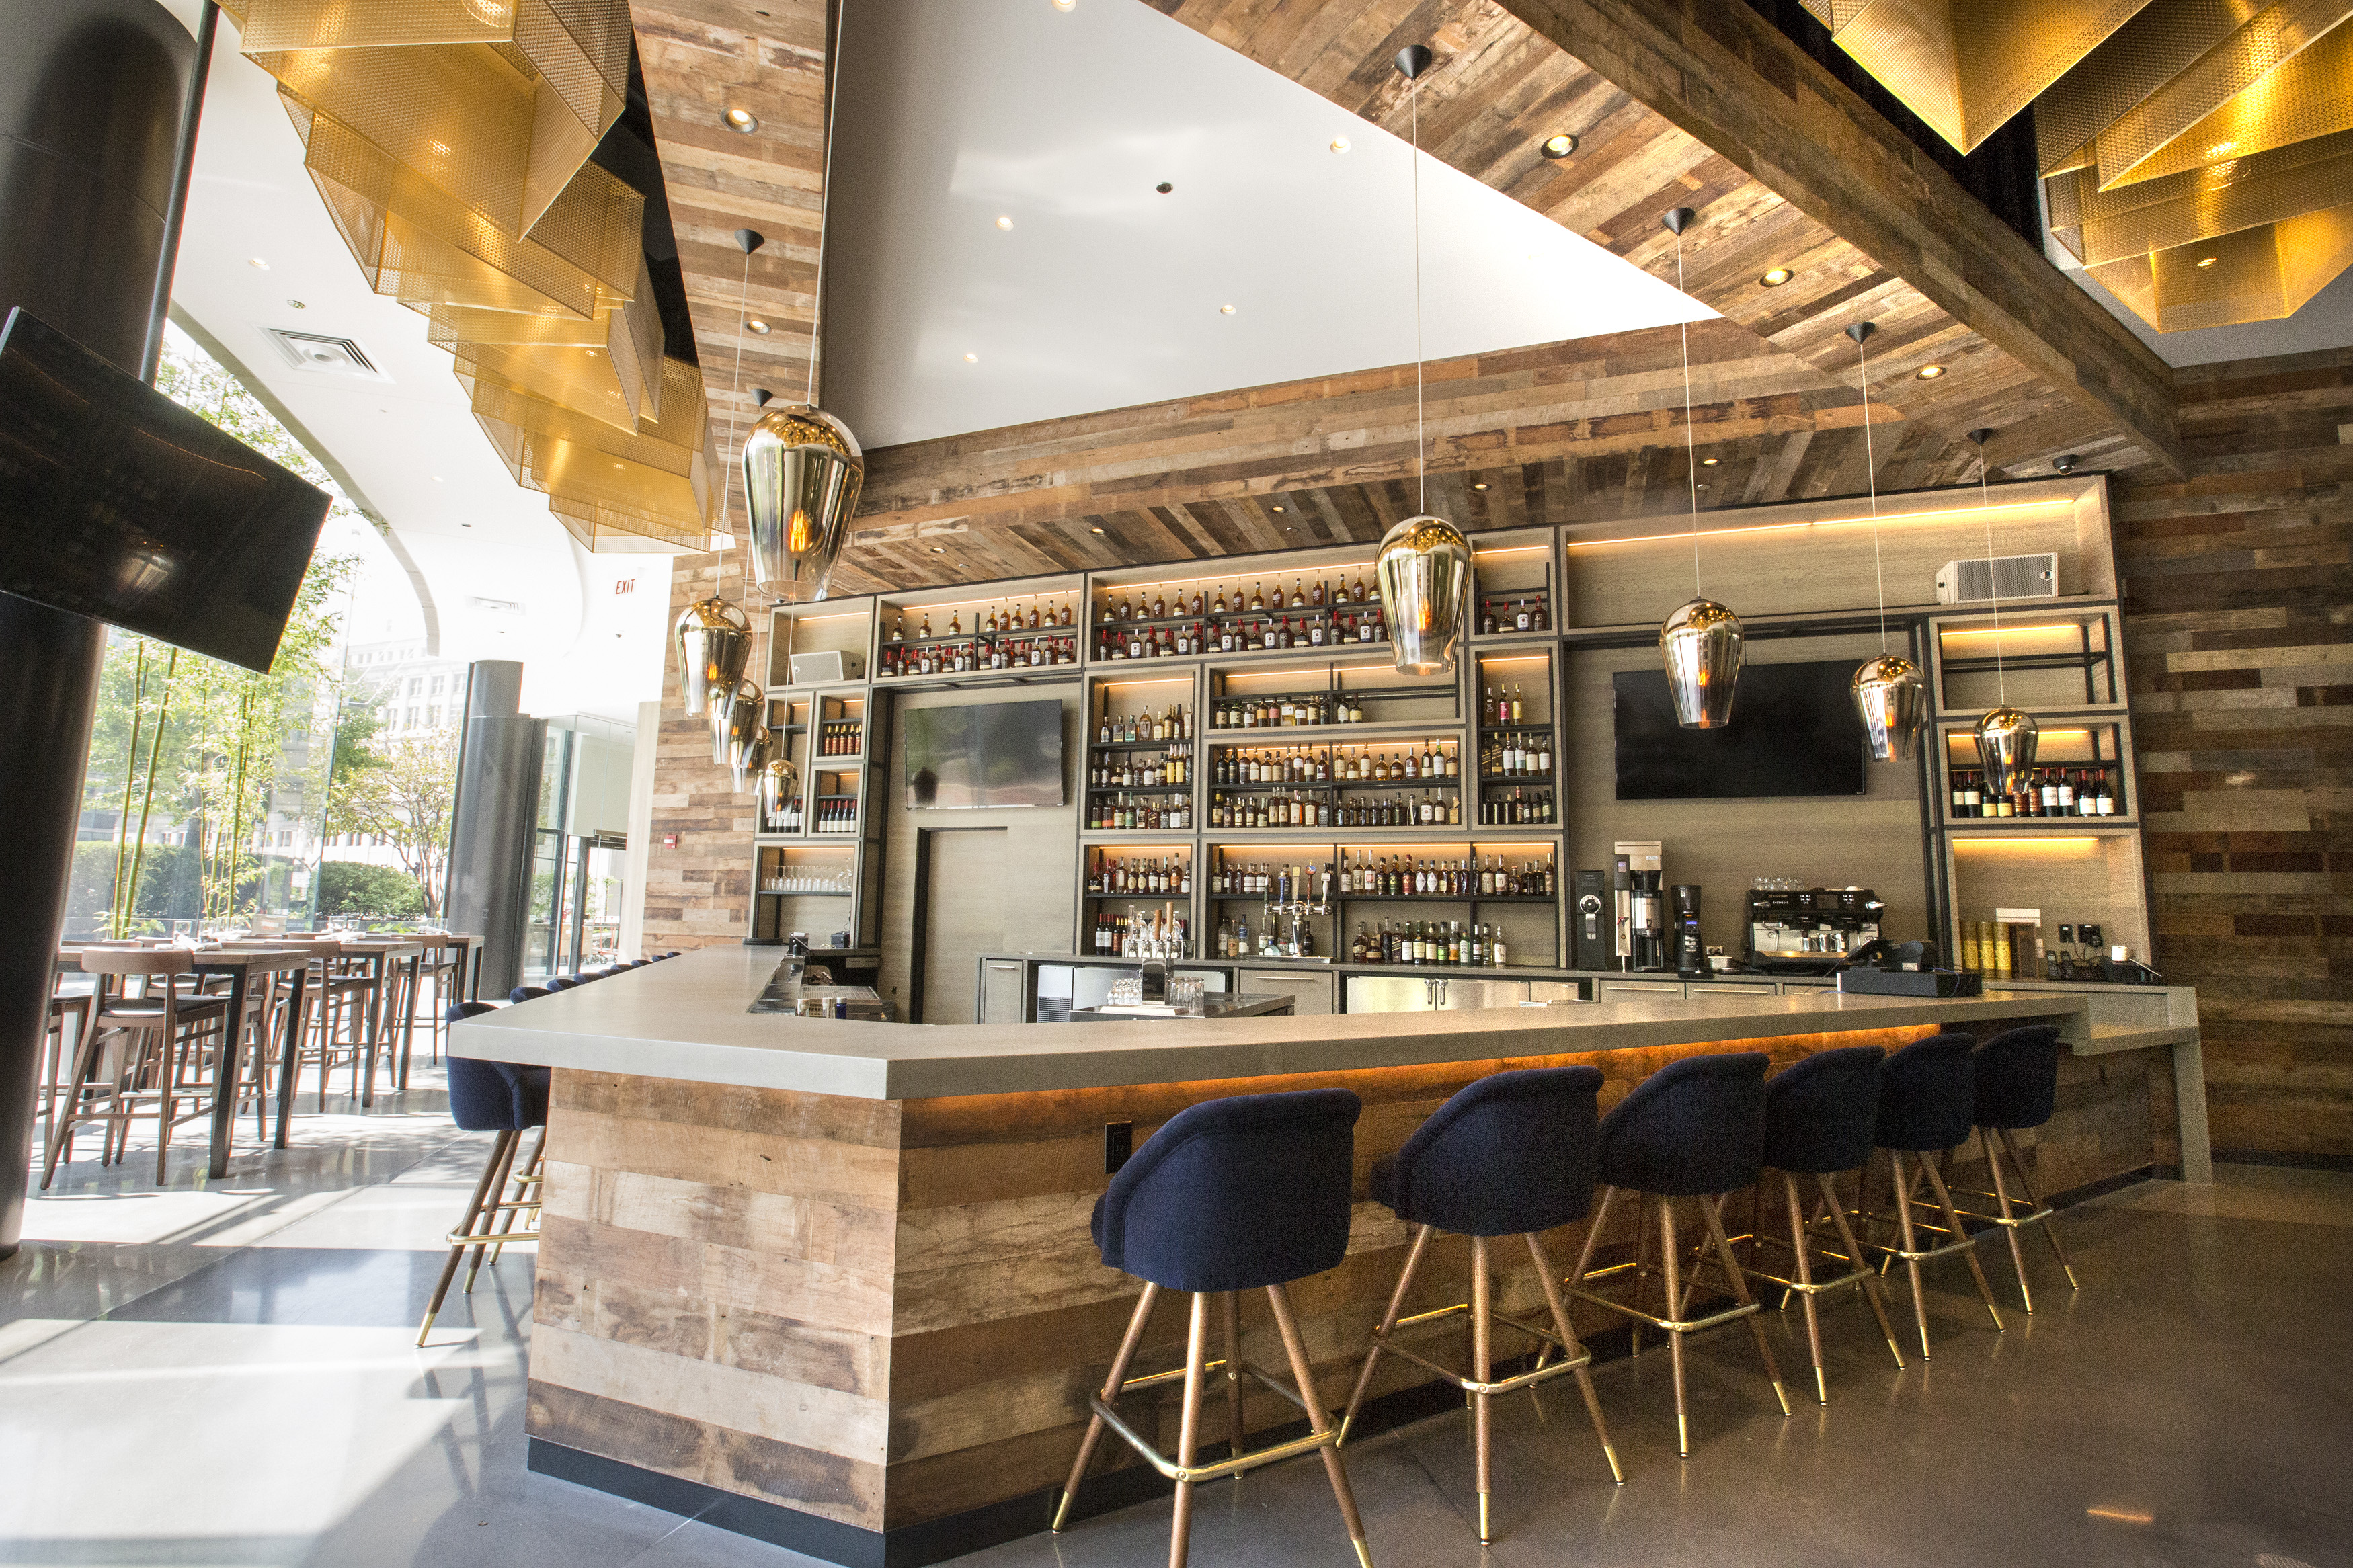 Little Toasted, Now Open, Offers Riverside Views With Gourmet Toast, Coffee, and Whisky